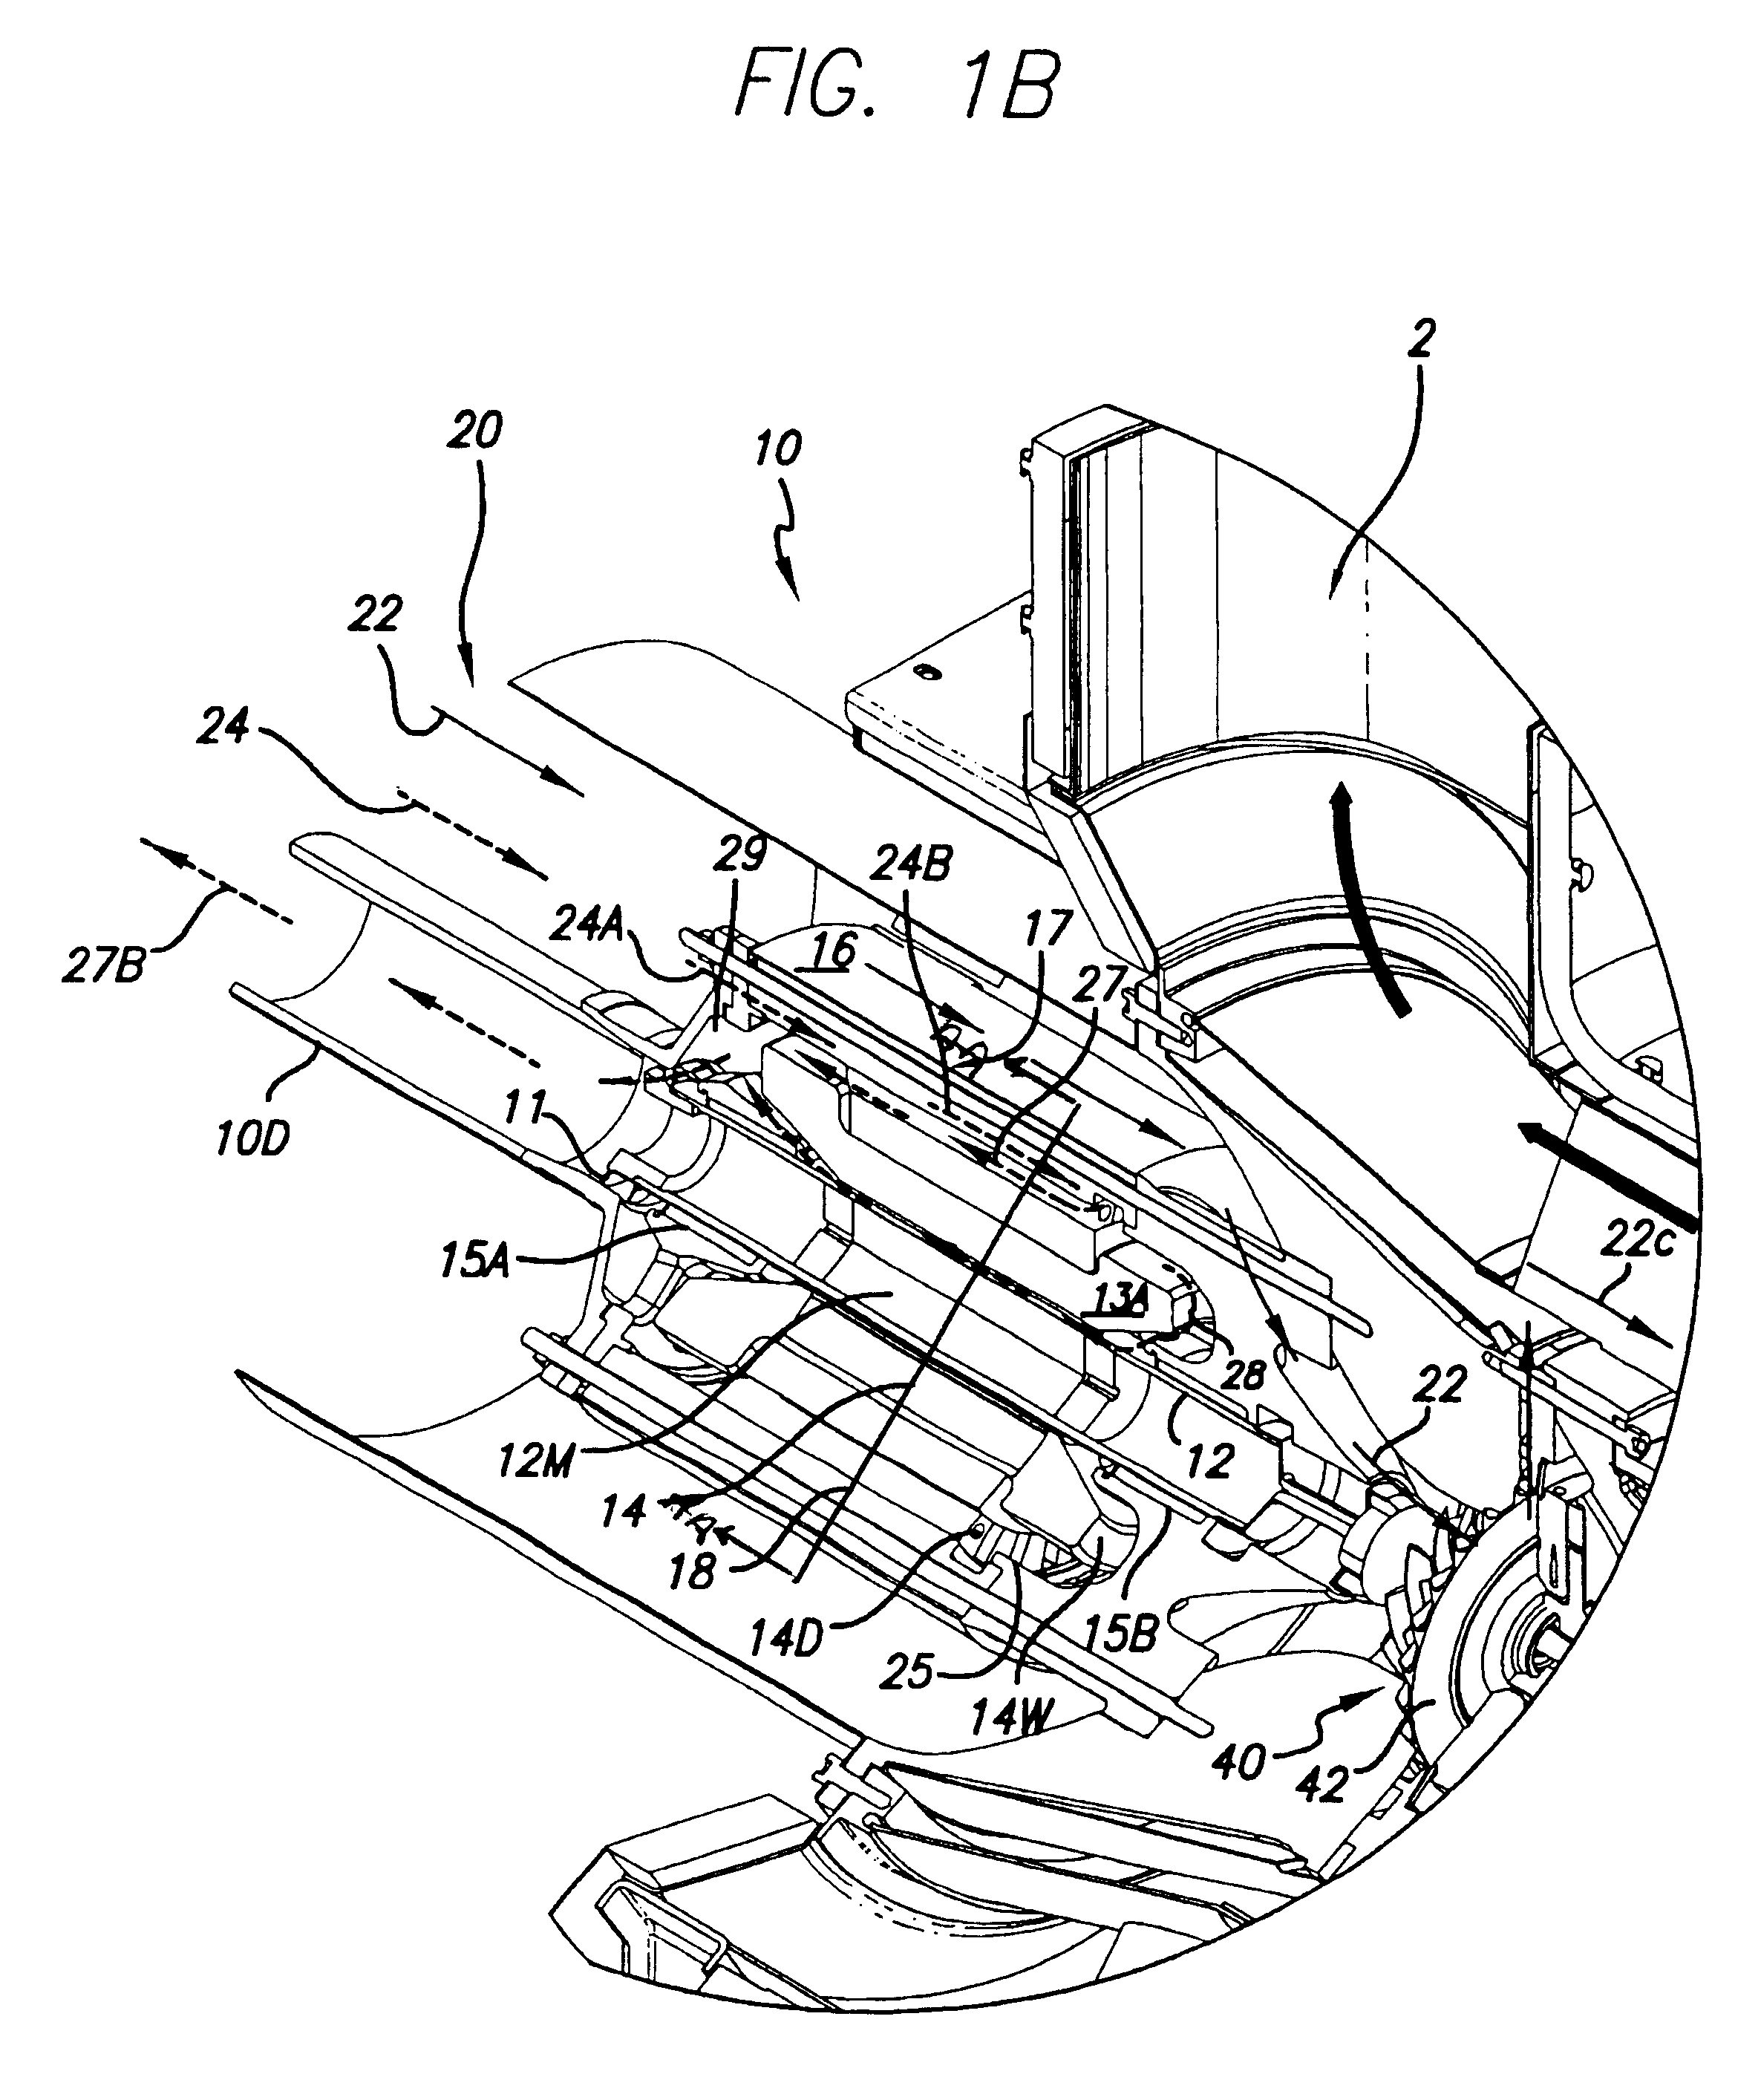 US6657332 moreover US6720685 in addition Pontiac G5 Engine Diagram together with 35 besides US6657332. on small engine cooling fins